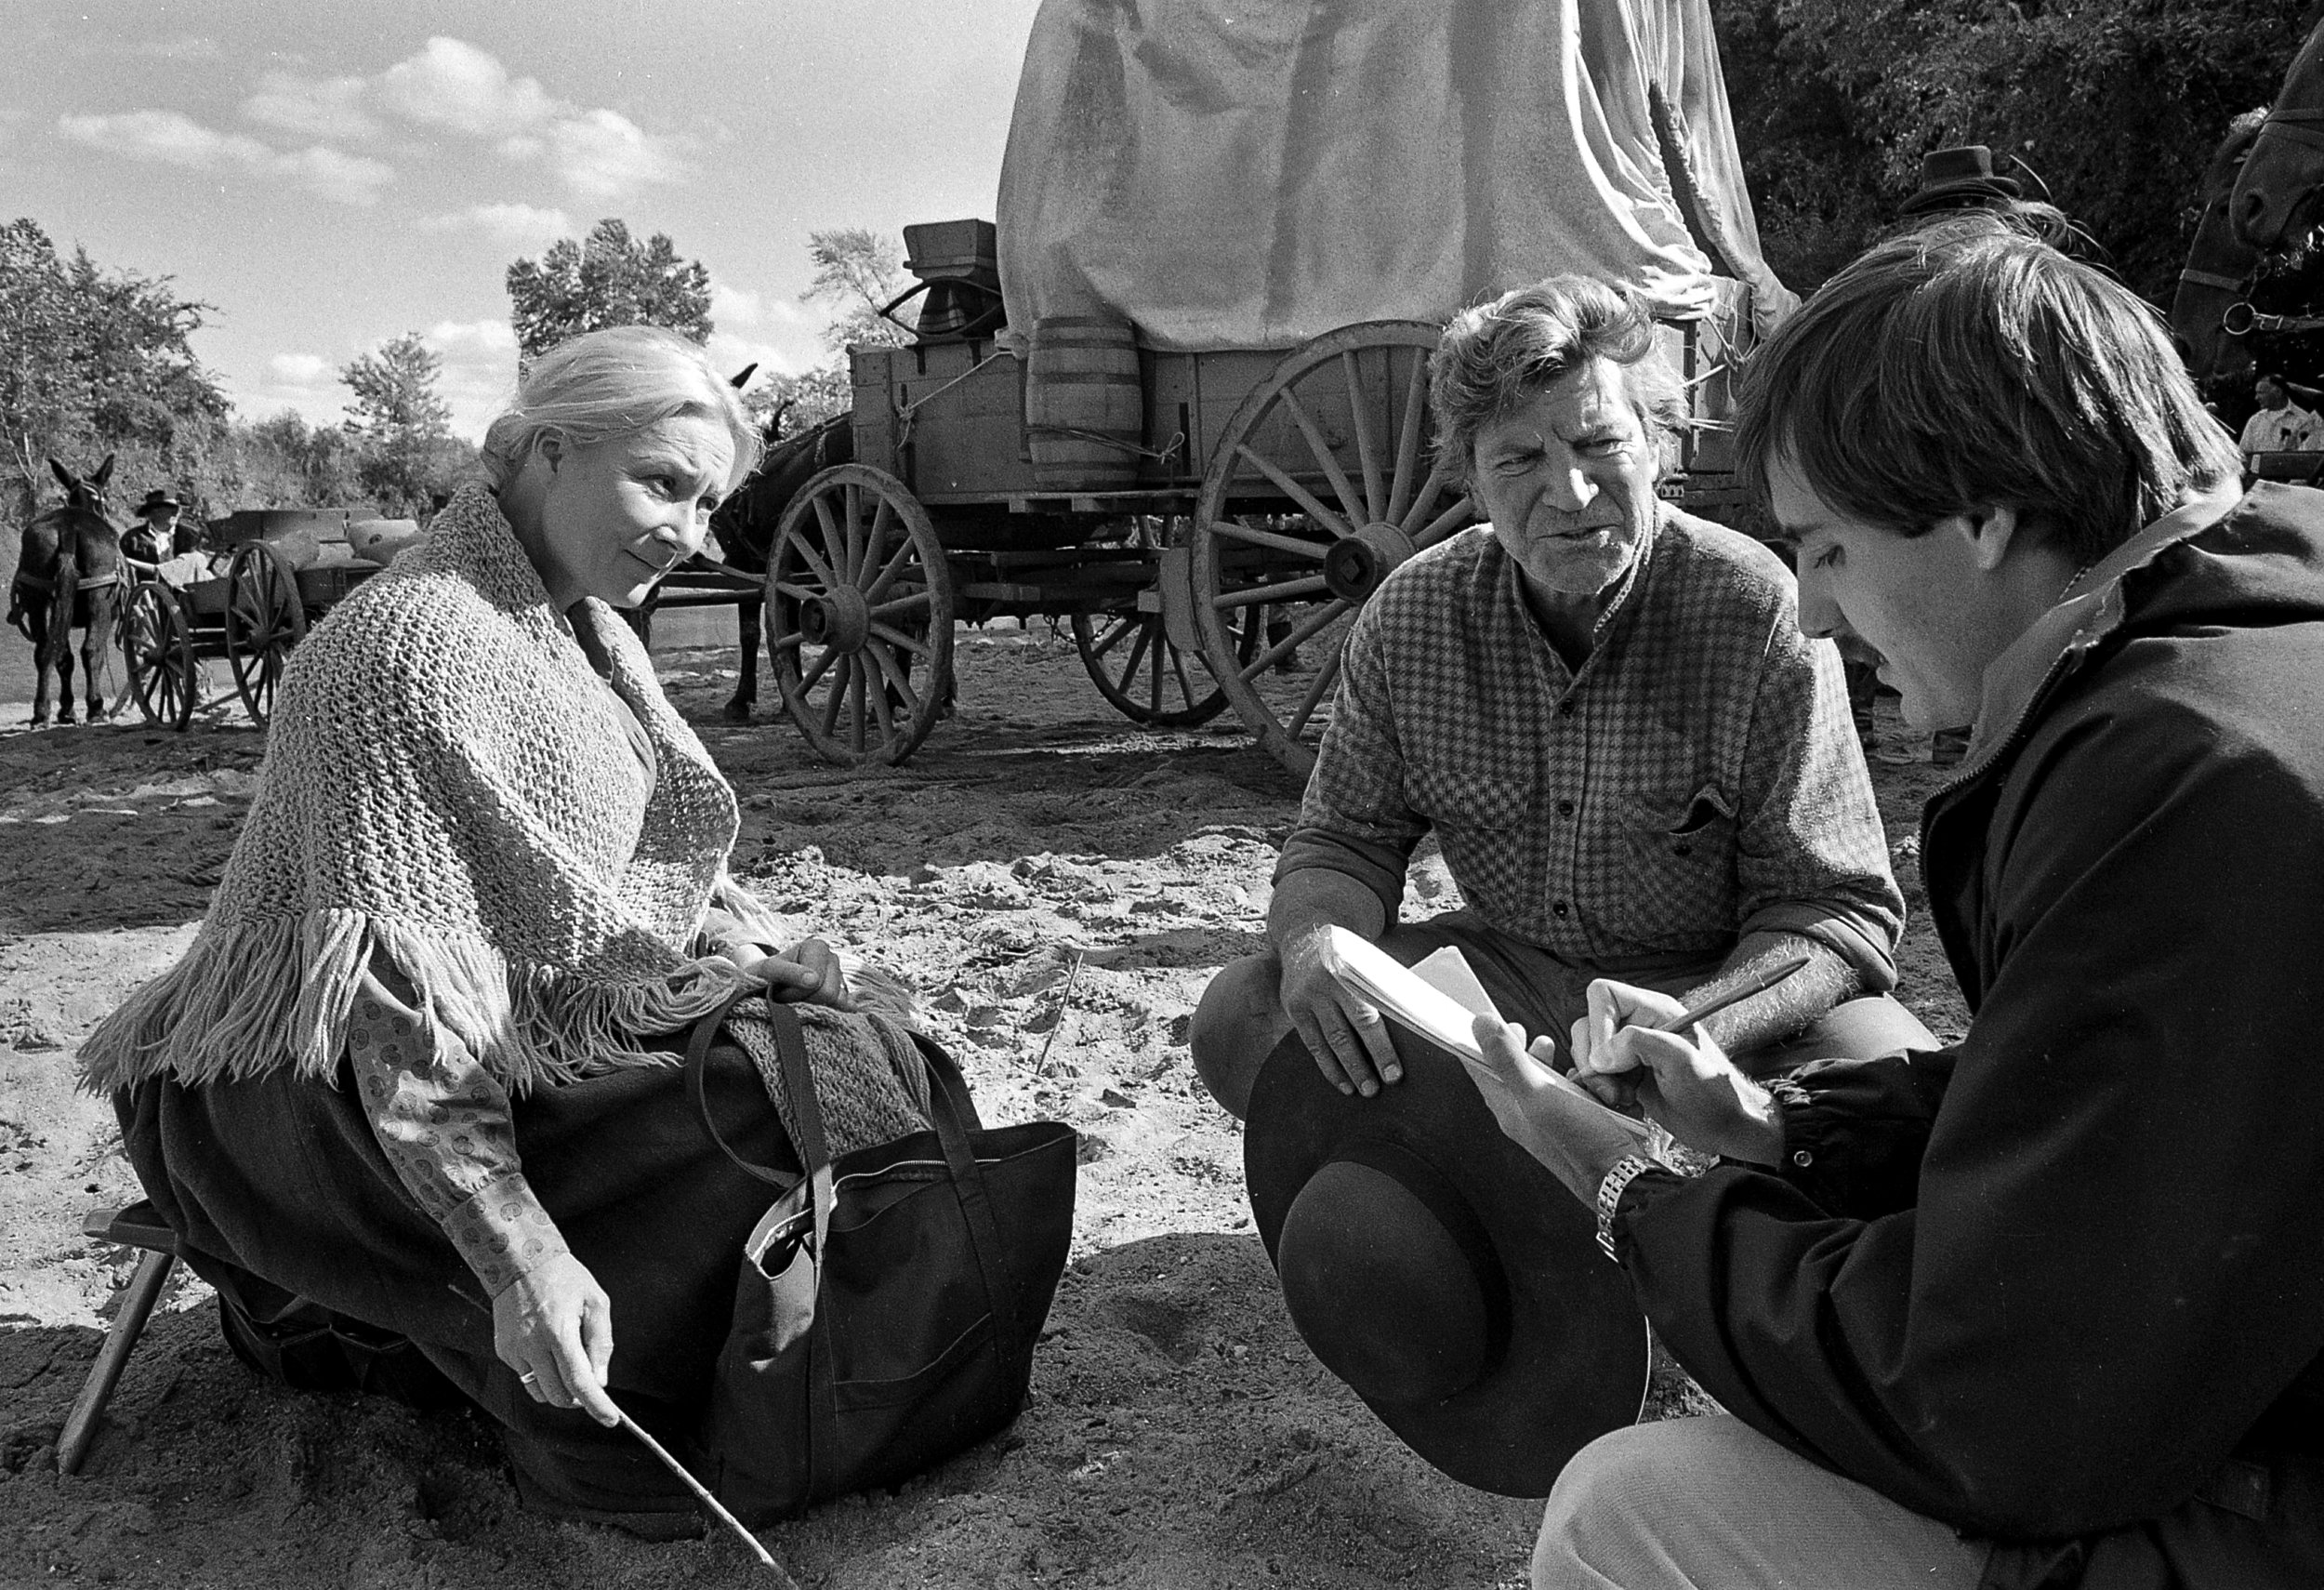 """Lead actors Rosemay Harris and Robert Preston talk to Steve Slack, a reporter for The State Journal-Register, during a break in filming for the television mini series """"The Chisholms"""" at New Salem State Historic Site, October 2, 1978. File/Bill Hagen/The State Journal-Registerentertainment; Hollywood; television; Rosemary Harris; Robert Preston; Ben Murphy; James Van Patten; Susan Swift; archive; spihistory; picpast"""